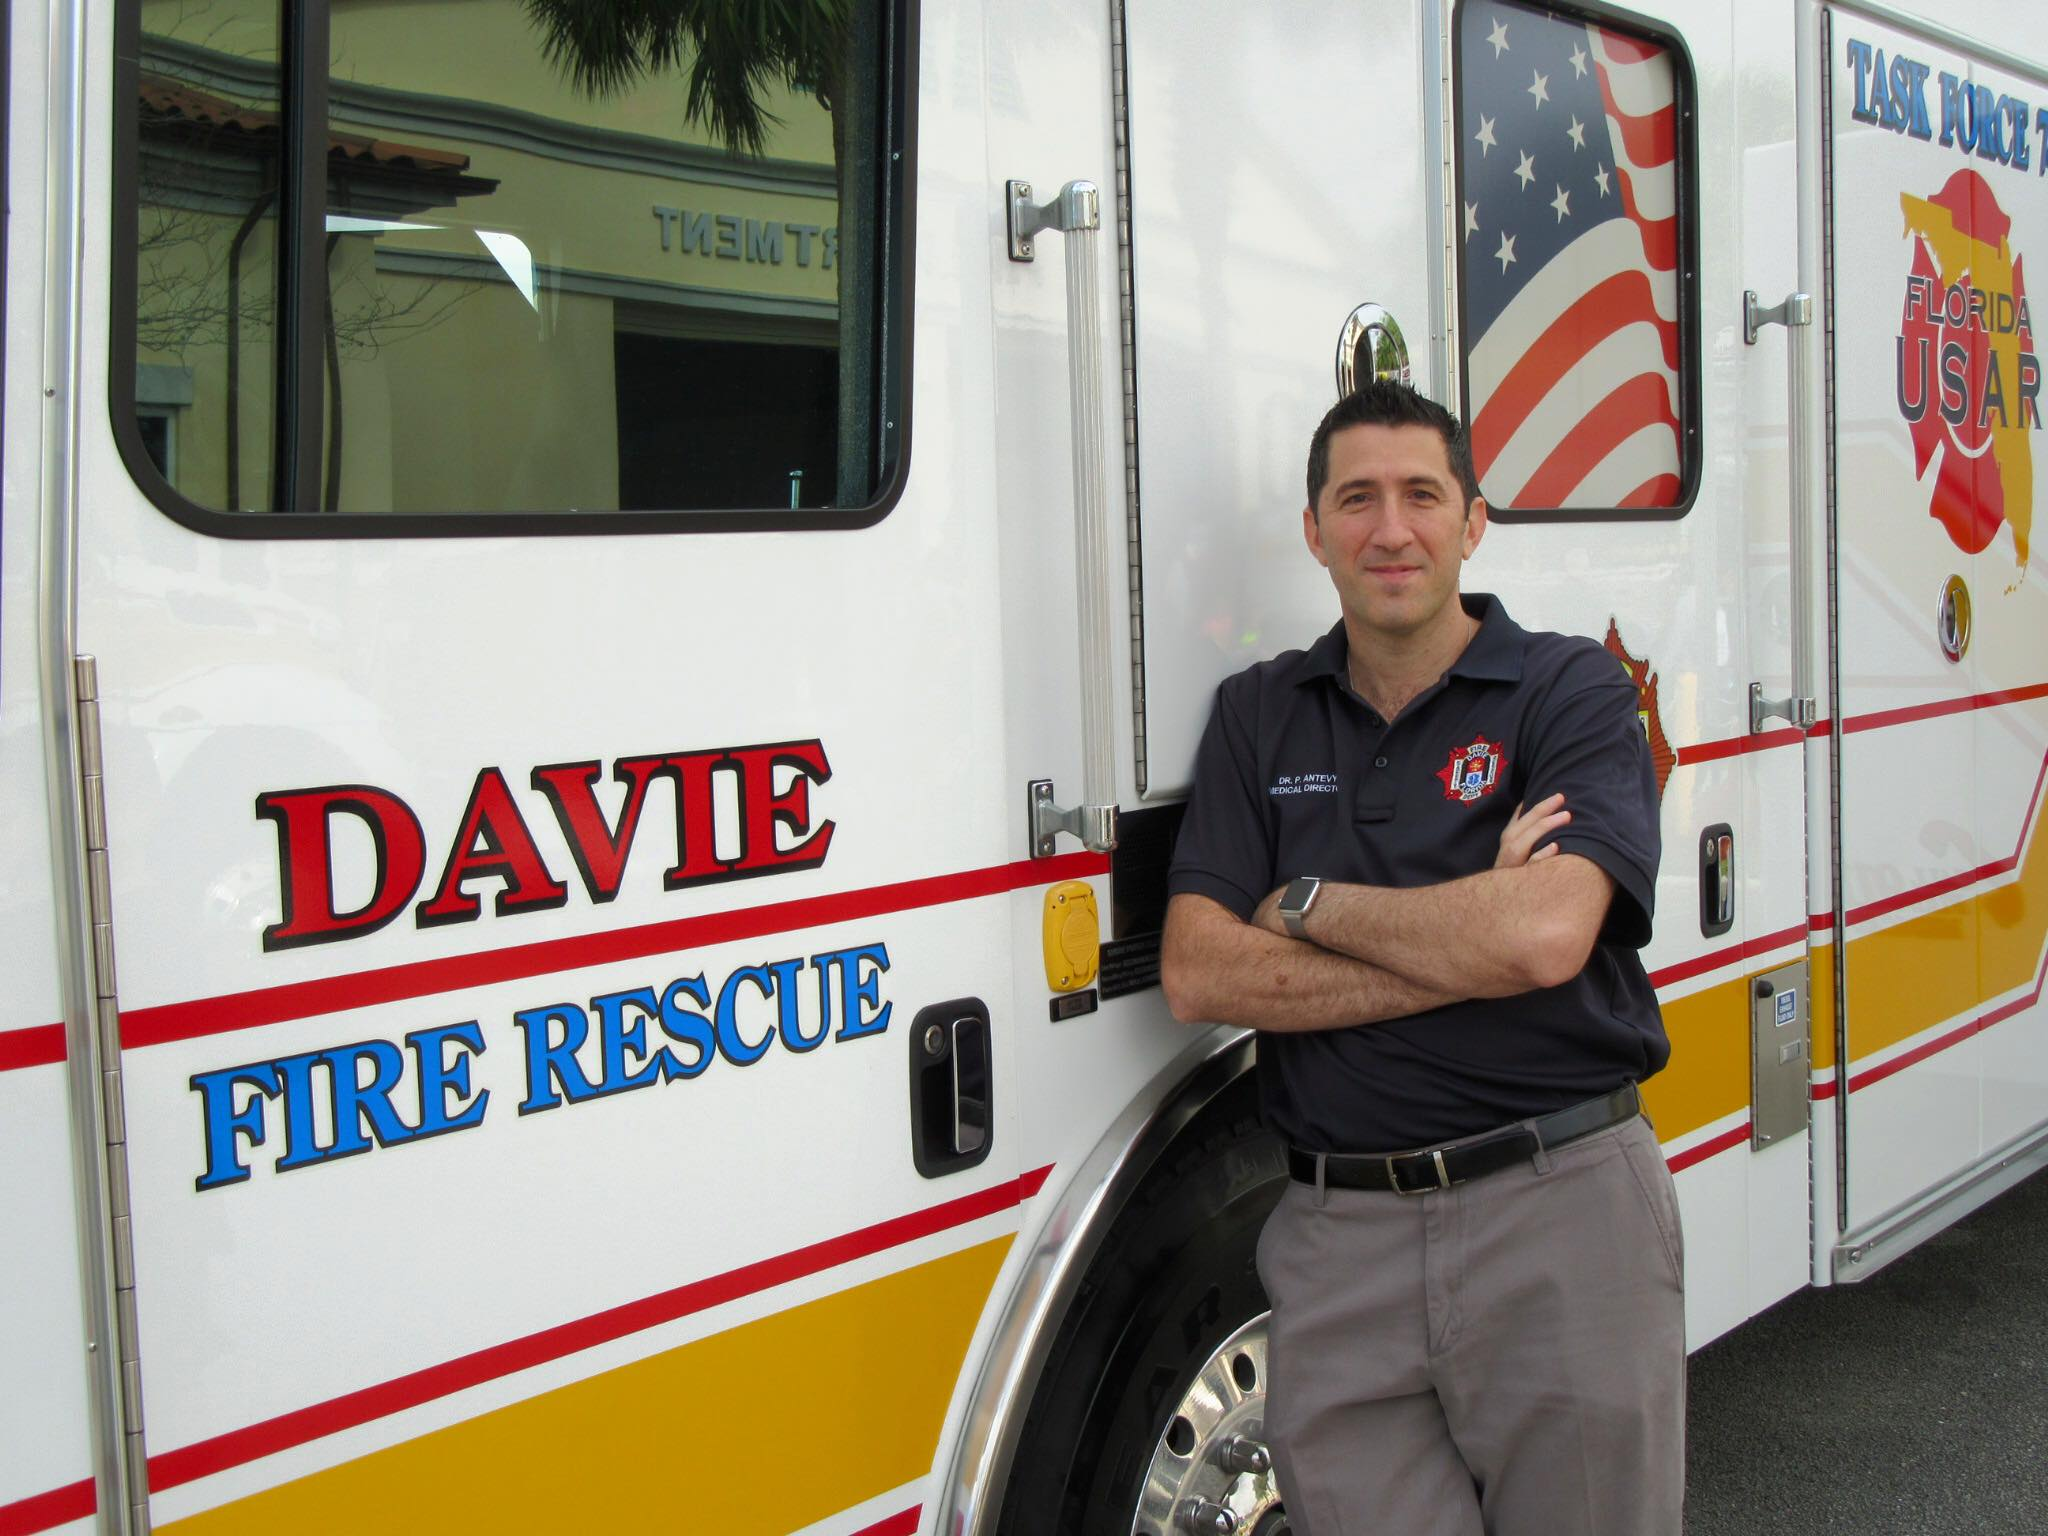 Dr. Antevy EMS Medical Director of the Year